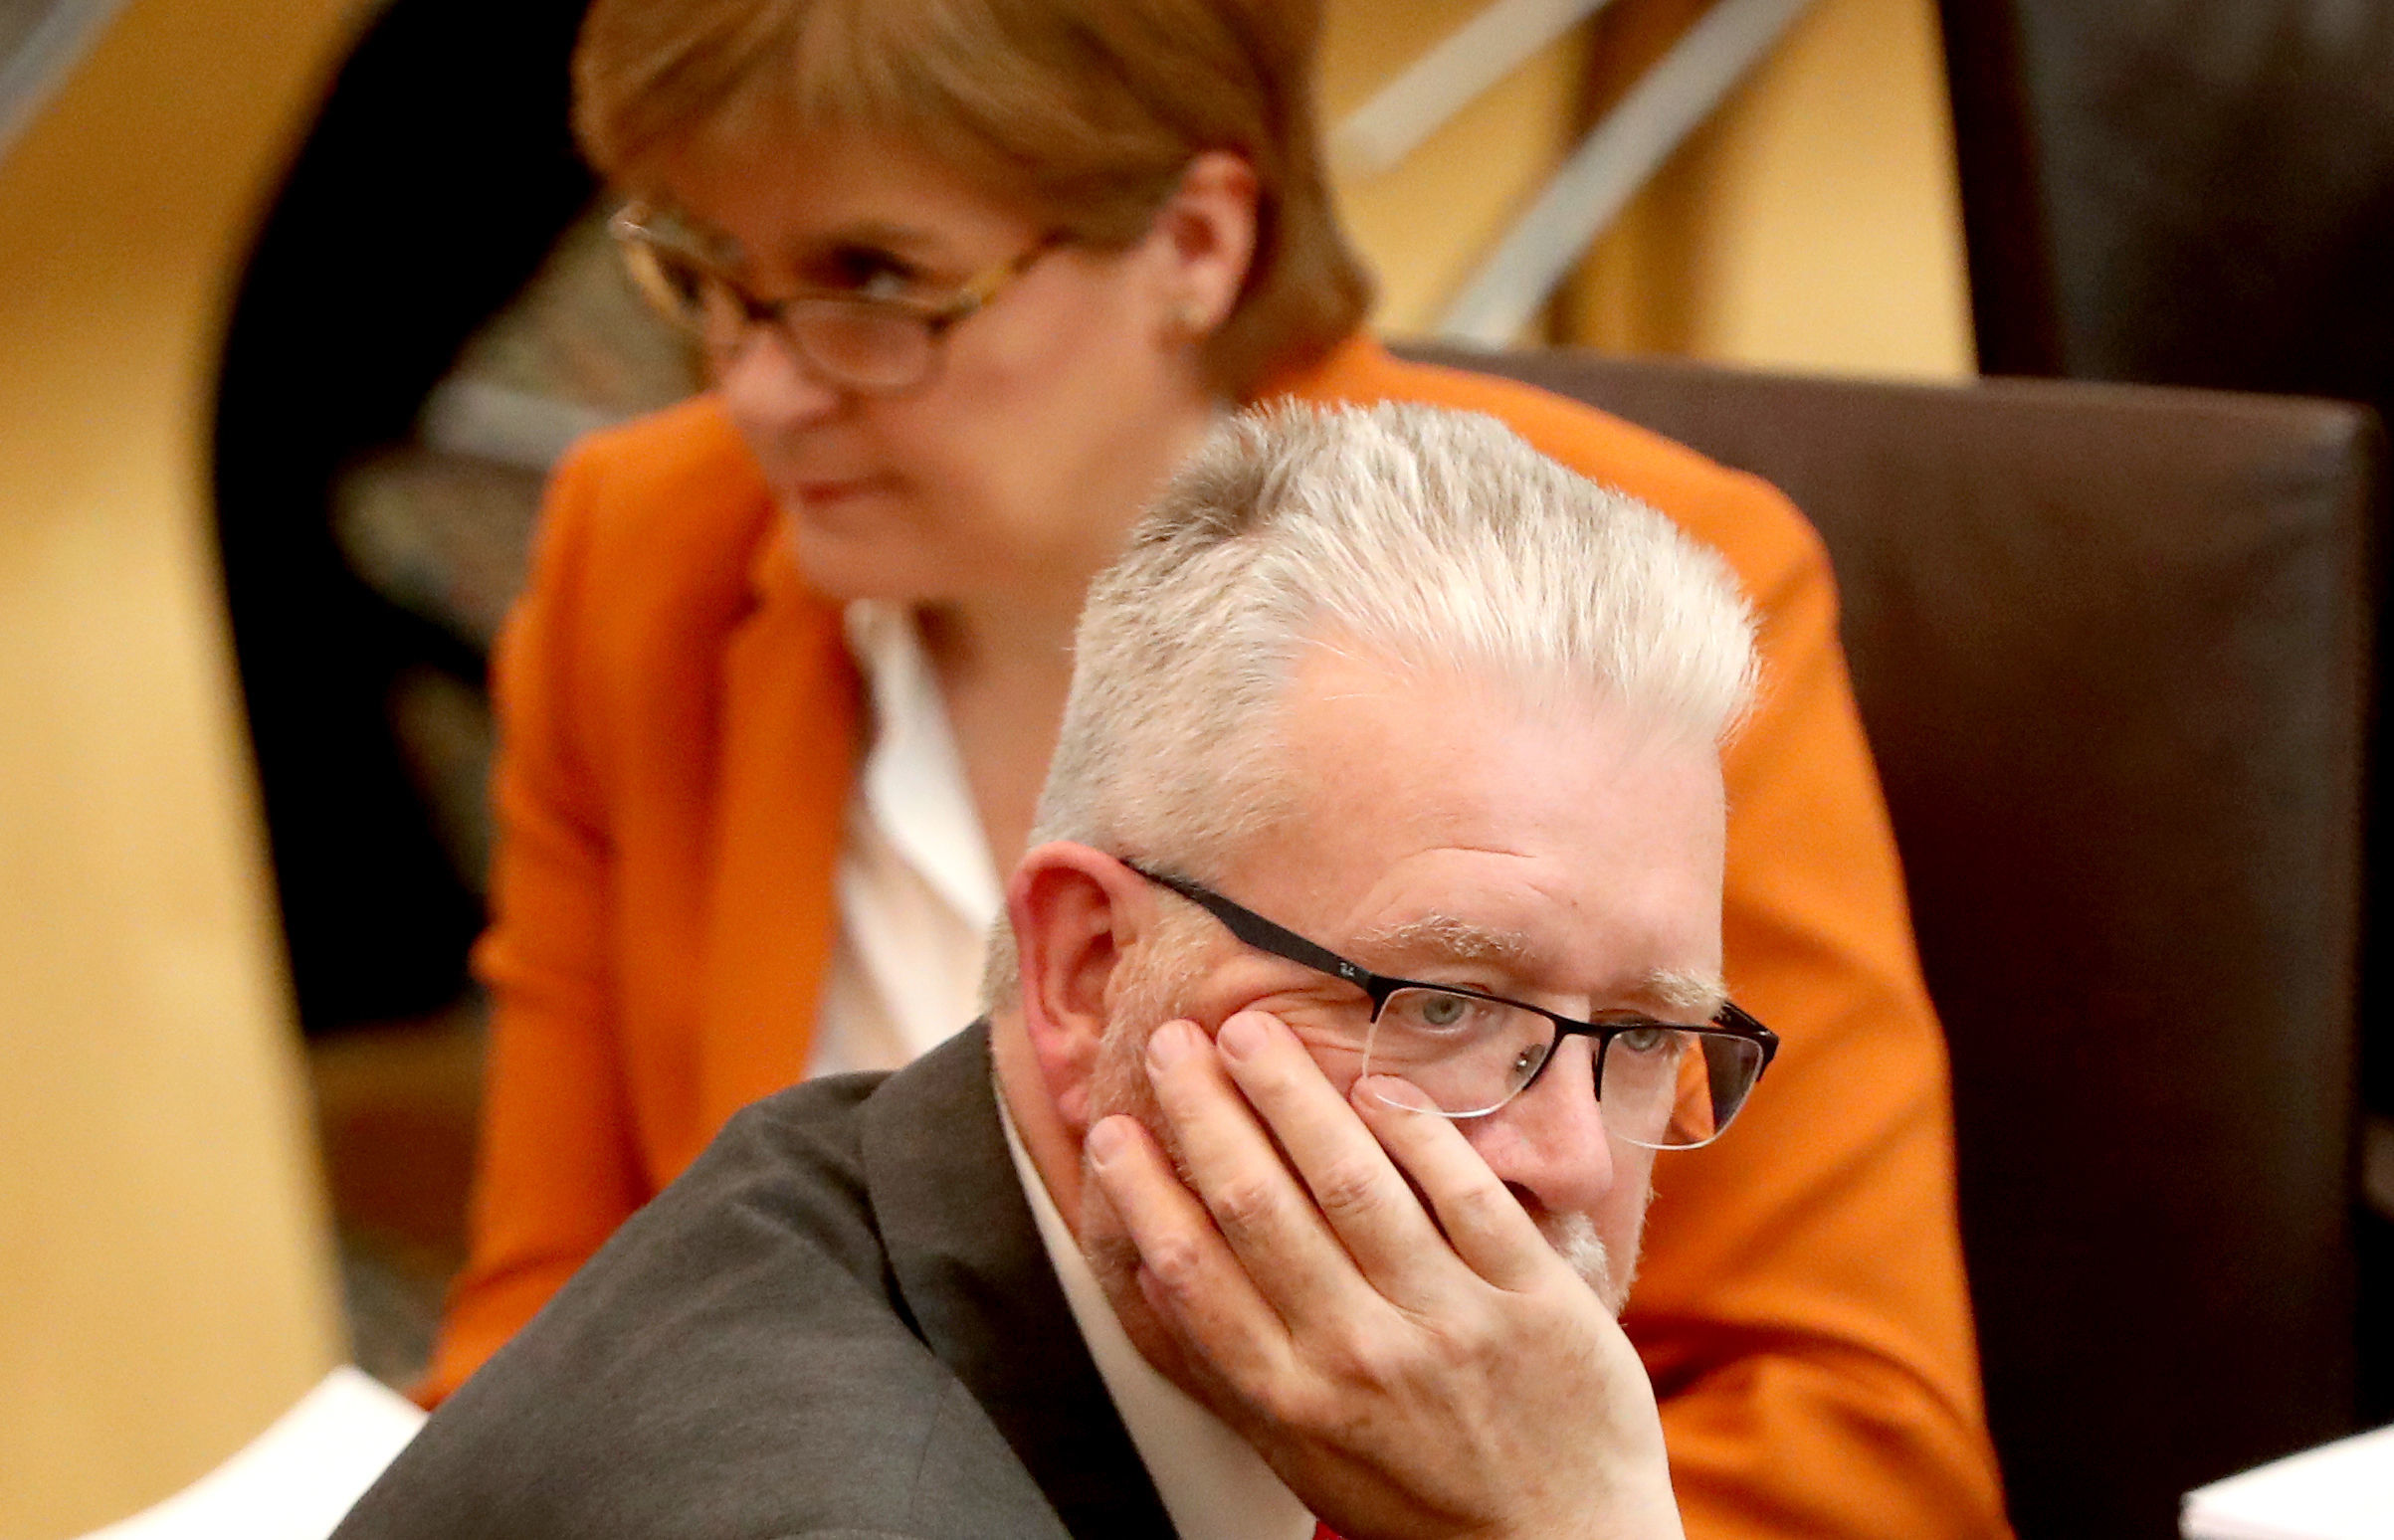 Scottish Brexit Minister Michael Russell during a Scottish Government debate on legislative consent to the EU withdrawal bill at the Scottish Parliament in Edinburgh. PRESS ASSOCIATION Photo. Picture date: Tuesday May 15, 2018. Photo credit should read: Andrew Milligan/PA Wire